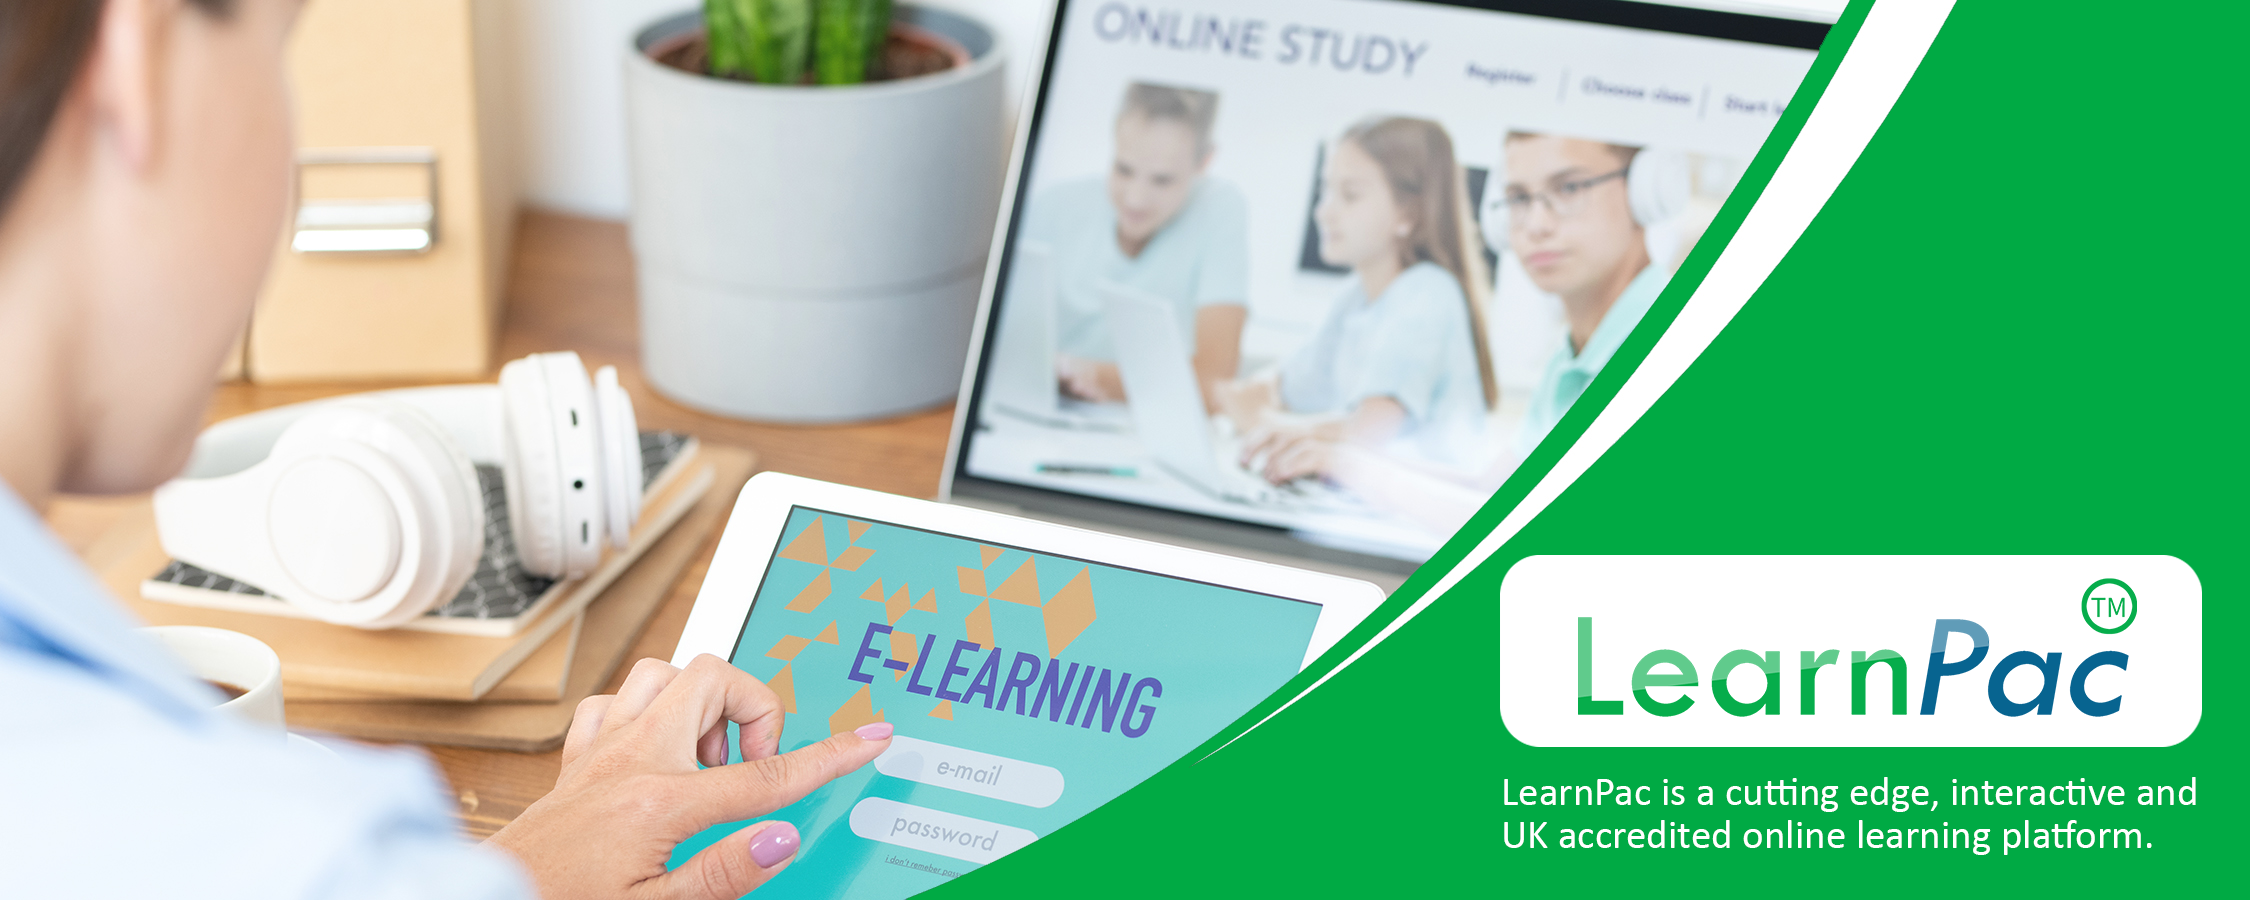 Attention Management Training - E-Learning Courses - LearnPac Systems UK -